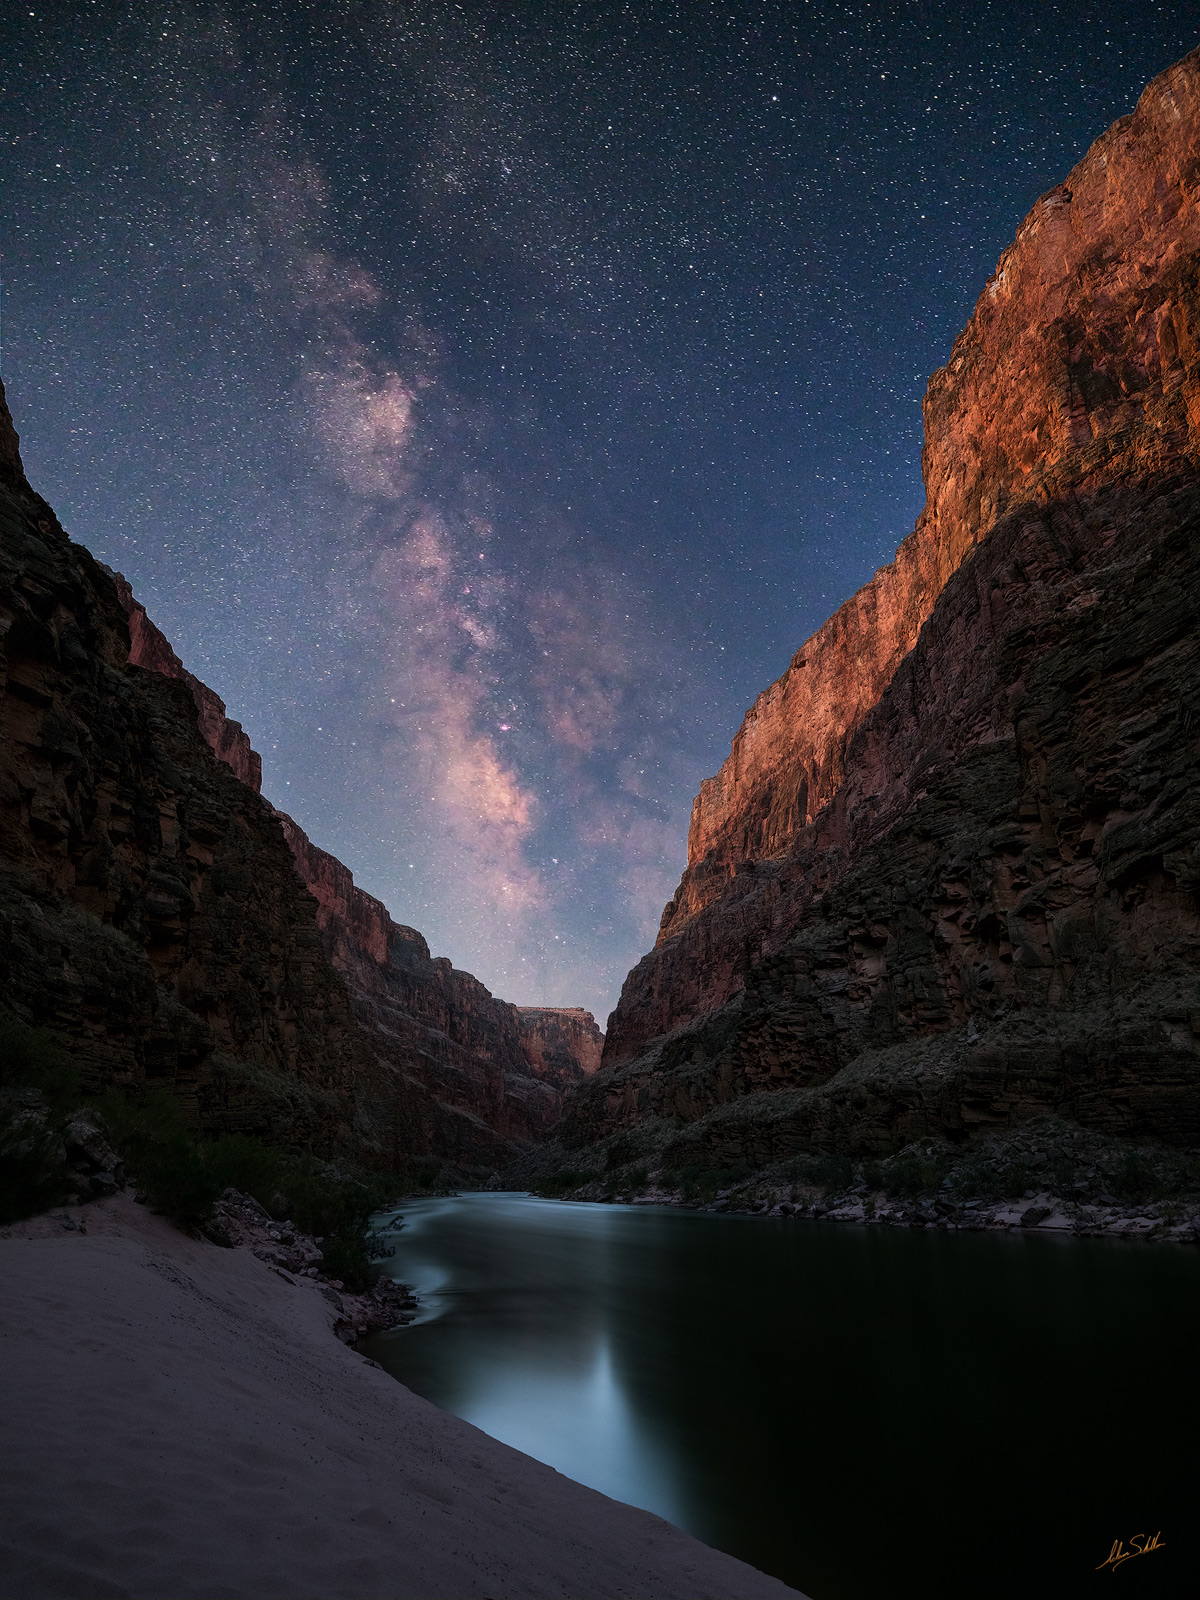 The towering cliffs of the Grand Canyon frame the Milky Way. A touch of moonlight illuminates the surrounding cliffs, and the...